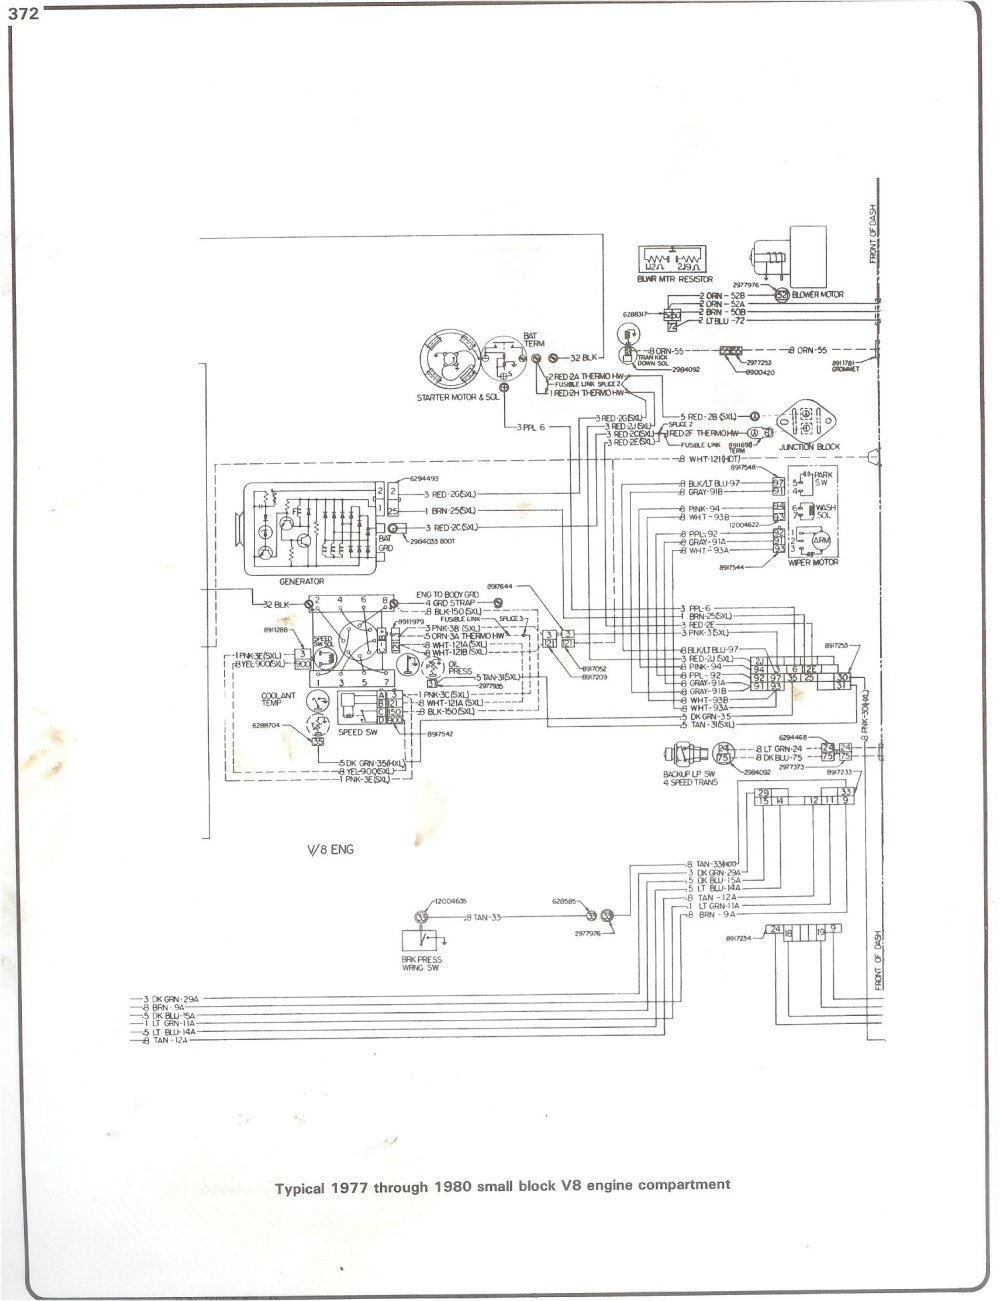 medium resolution of 77 chevy truck wiring harness wiring diagrams 2005 chevy radio wiring harness 73 87 chevy wiring harness